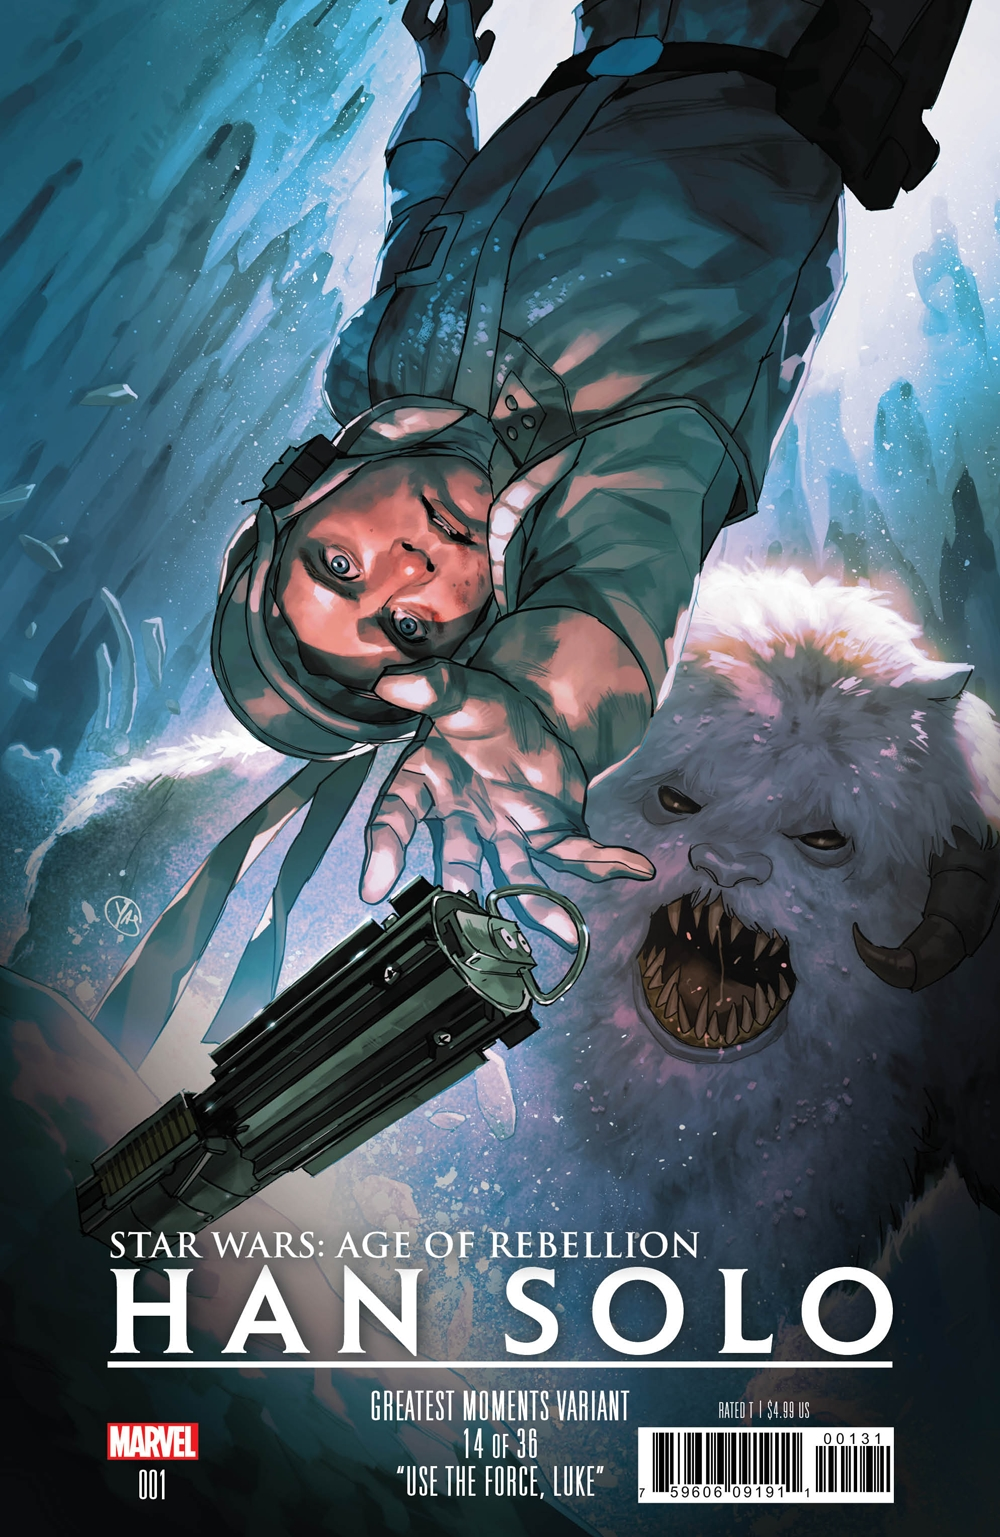 Age of Rebellion: Han Solo #1 (Yasmine Putri Greatest Moments Variant Cover 14 of 36) (01.05.2019)